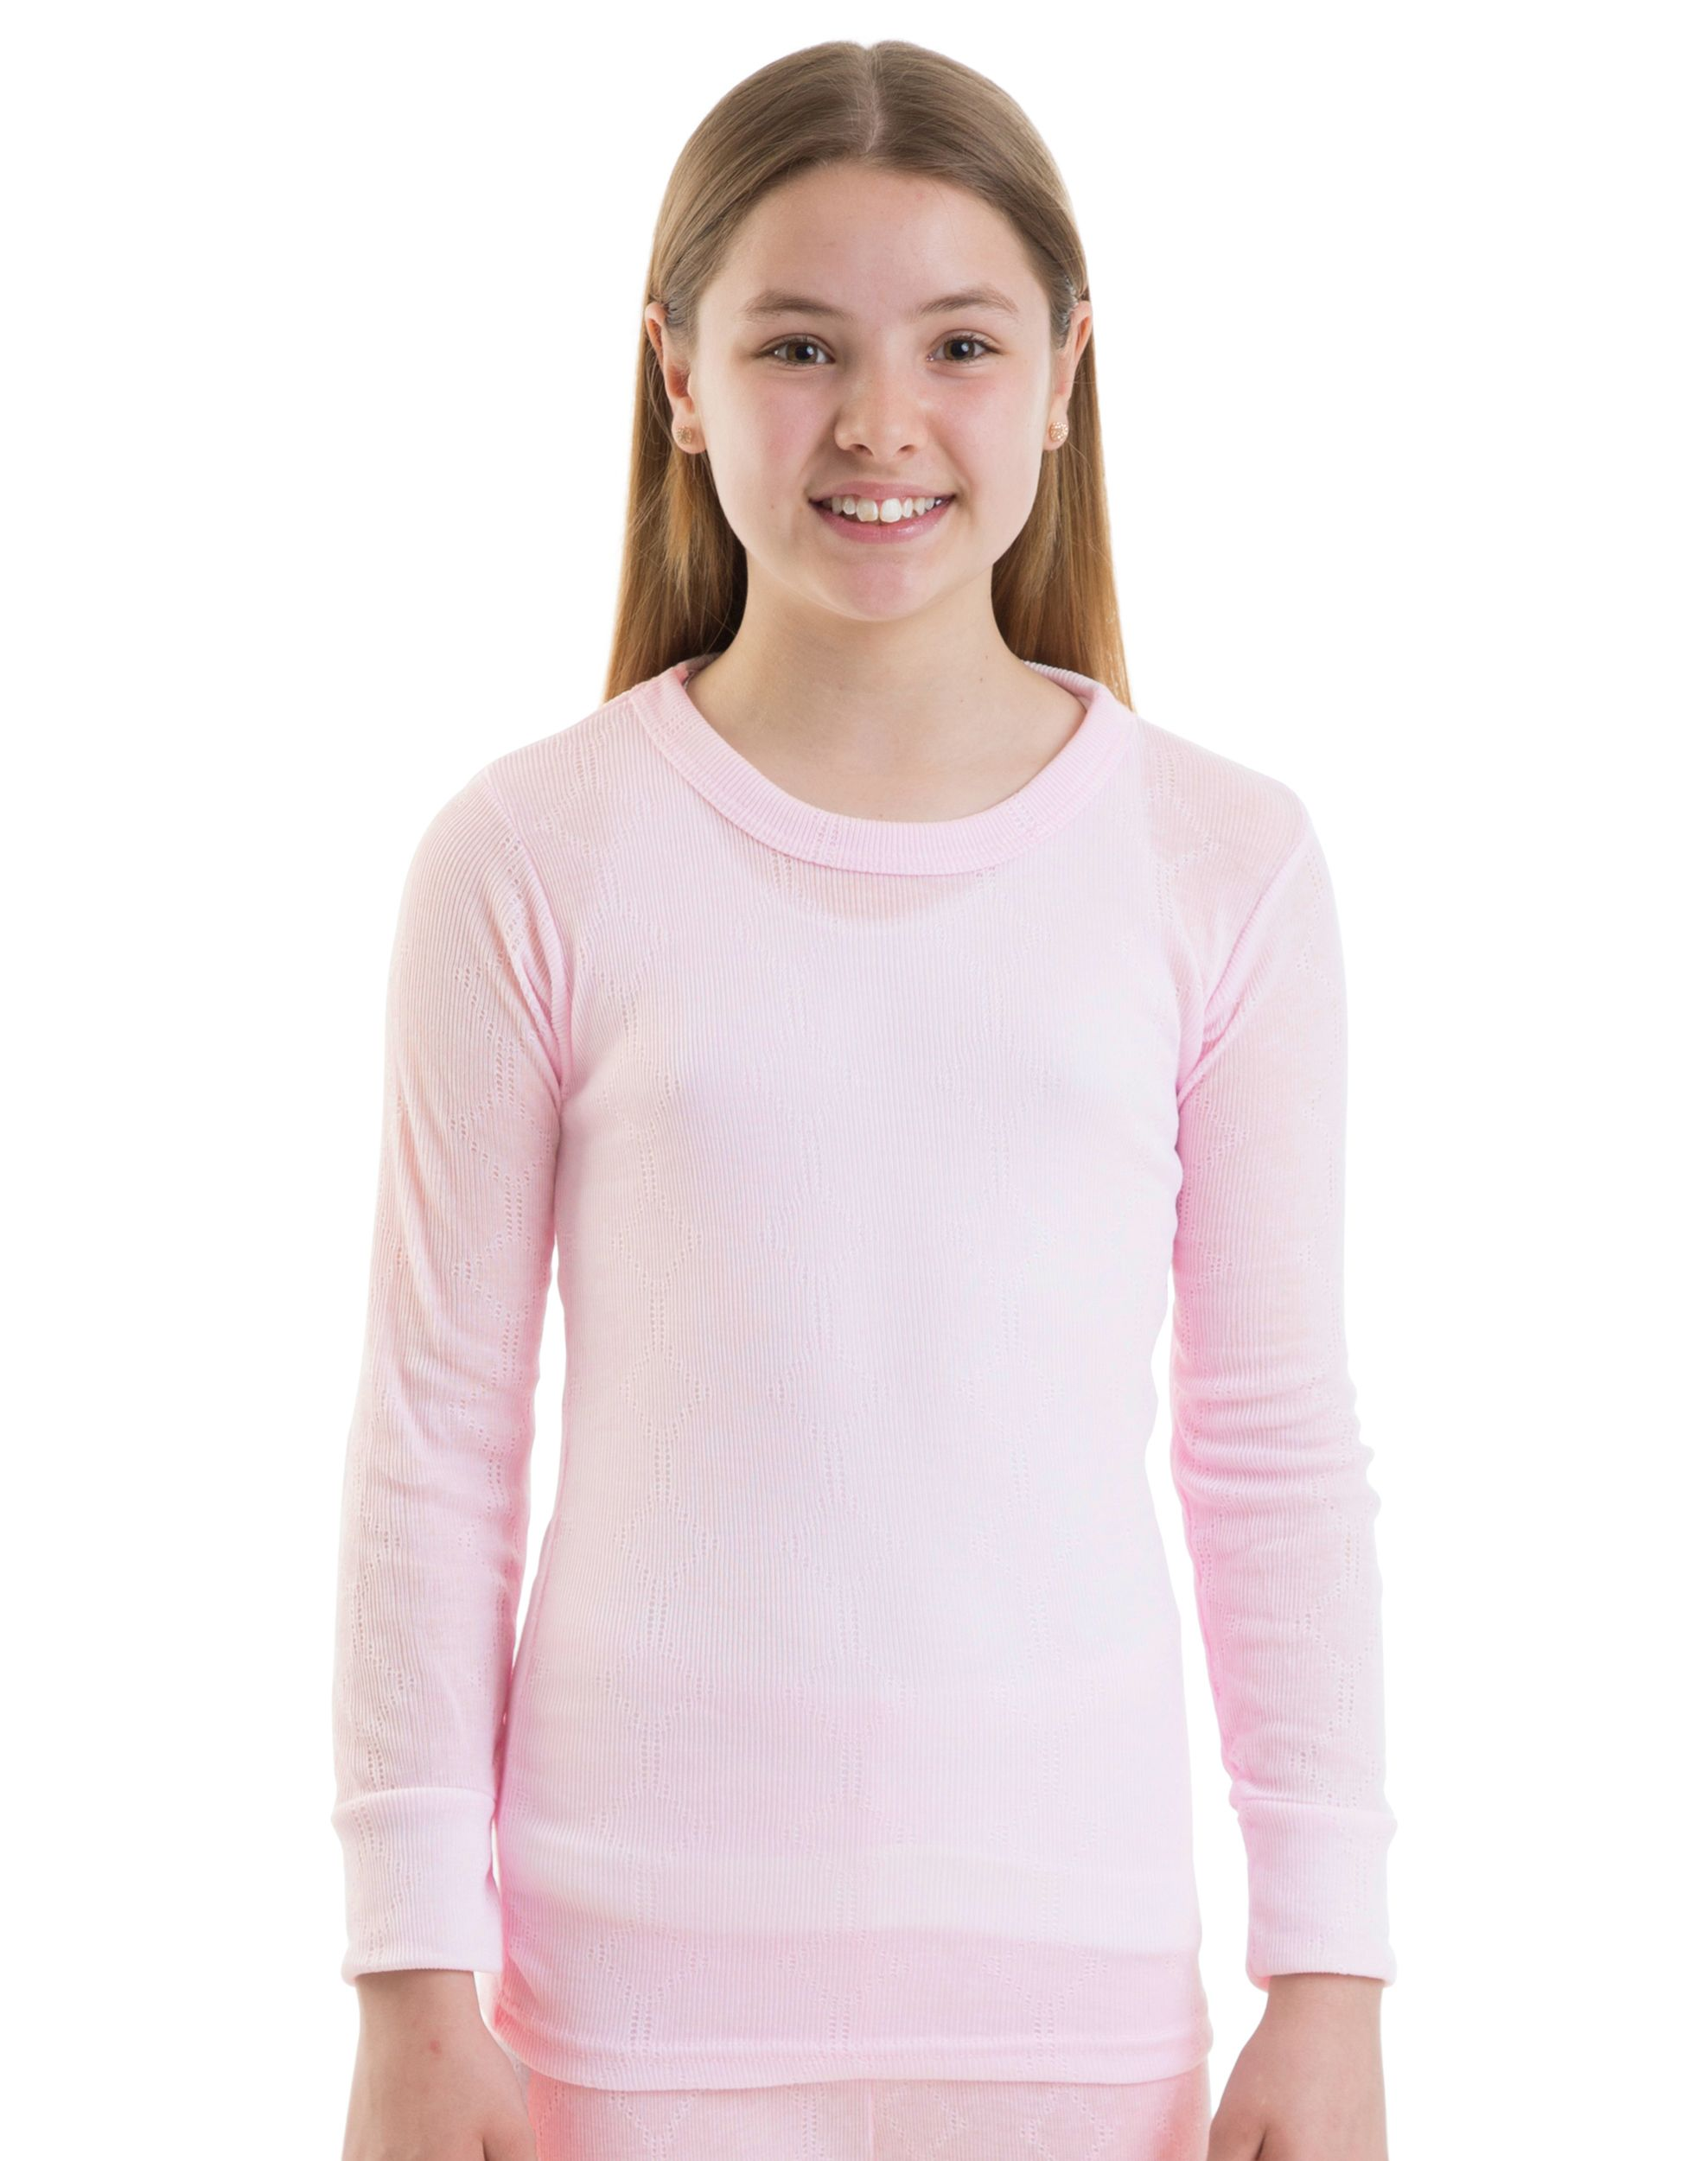 Shop affordable & fashionable toddler girl long sleeve graphic tees at dnxvvyut.ml Available in sizes 2T- 5T. Socks & Underwear > Accessories > Toys & Gifts > Clear All Done. Toddler Girl Long Sleeve Graphic Tees. View All () Previous Page. Page 1 of 6. Next Page. items.